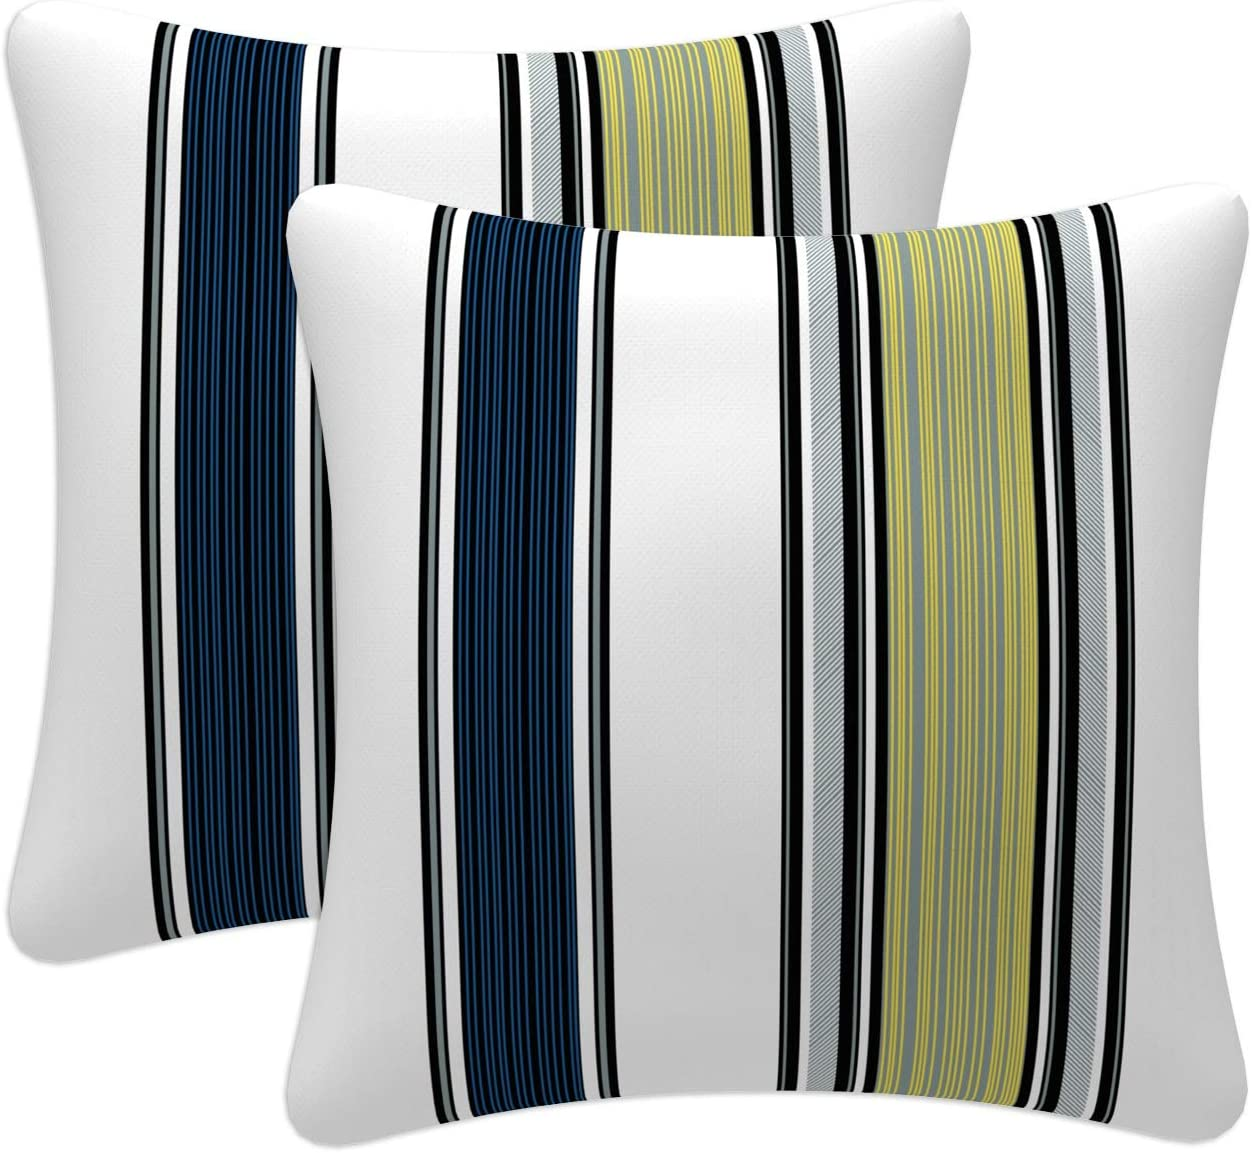 Decorative Throw Pillow Fits 18x18 Insert Dots Stripes Amagansett Beachcomber Blue White Throw Pillow Cover with Invisible Zipper